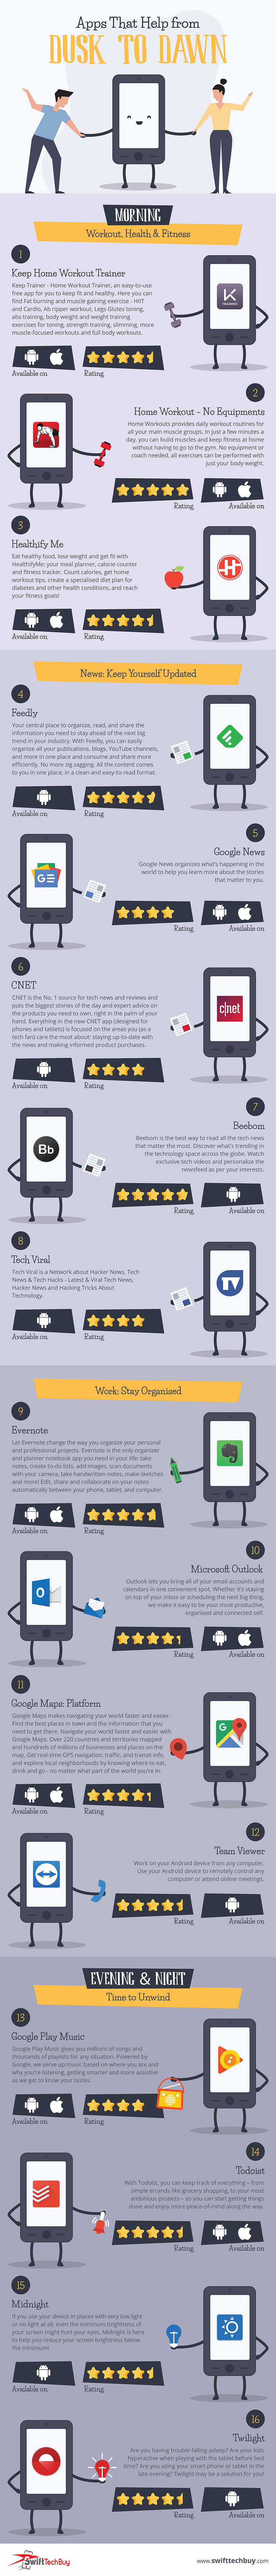 Apps-that-Help-from-Dusk-to-Dawn-Infographic